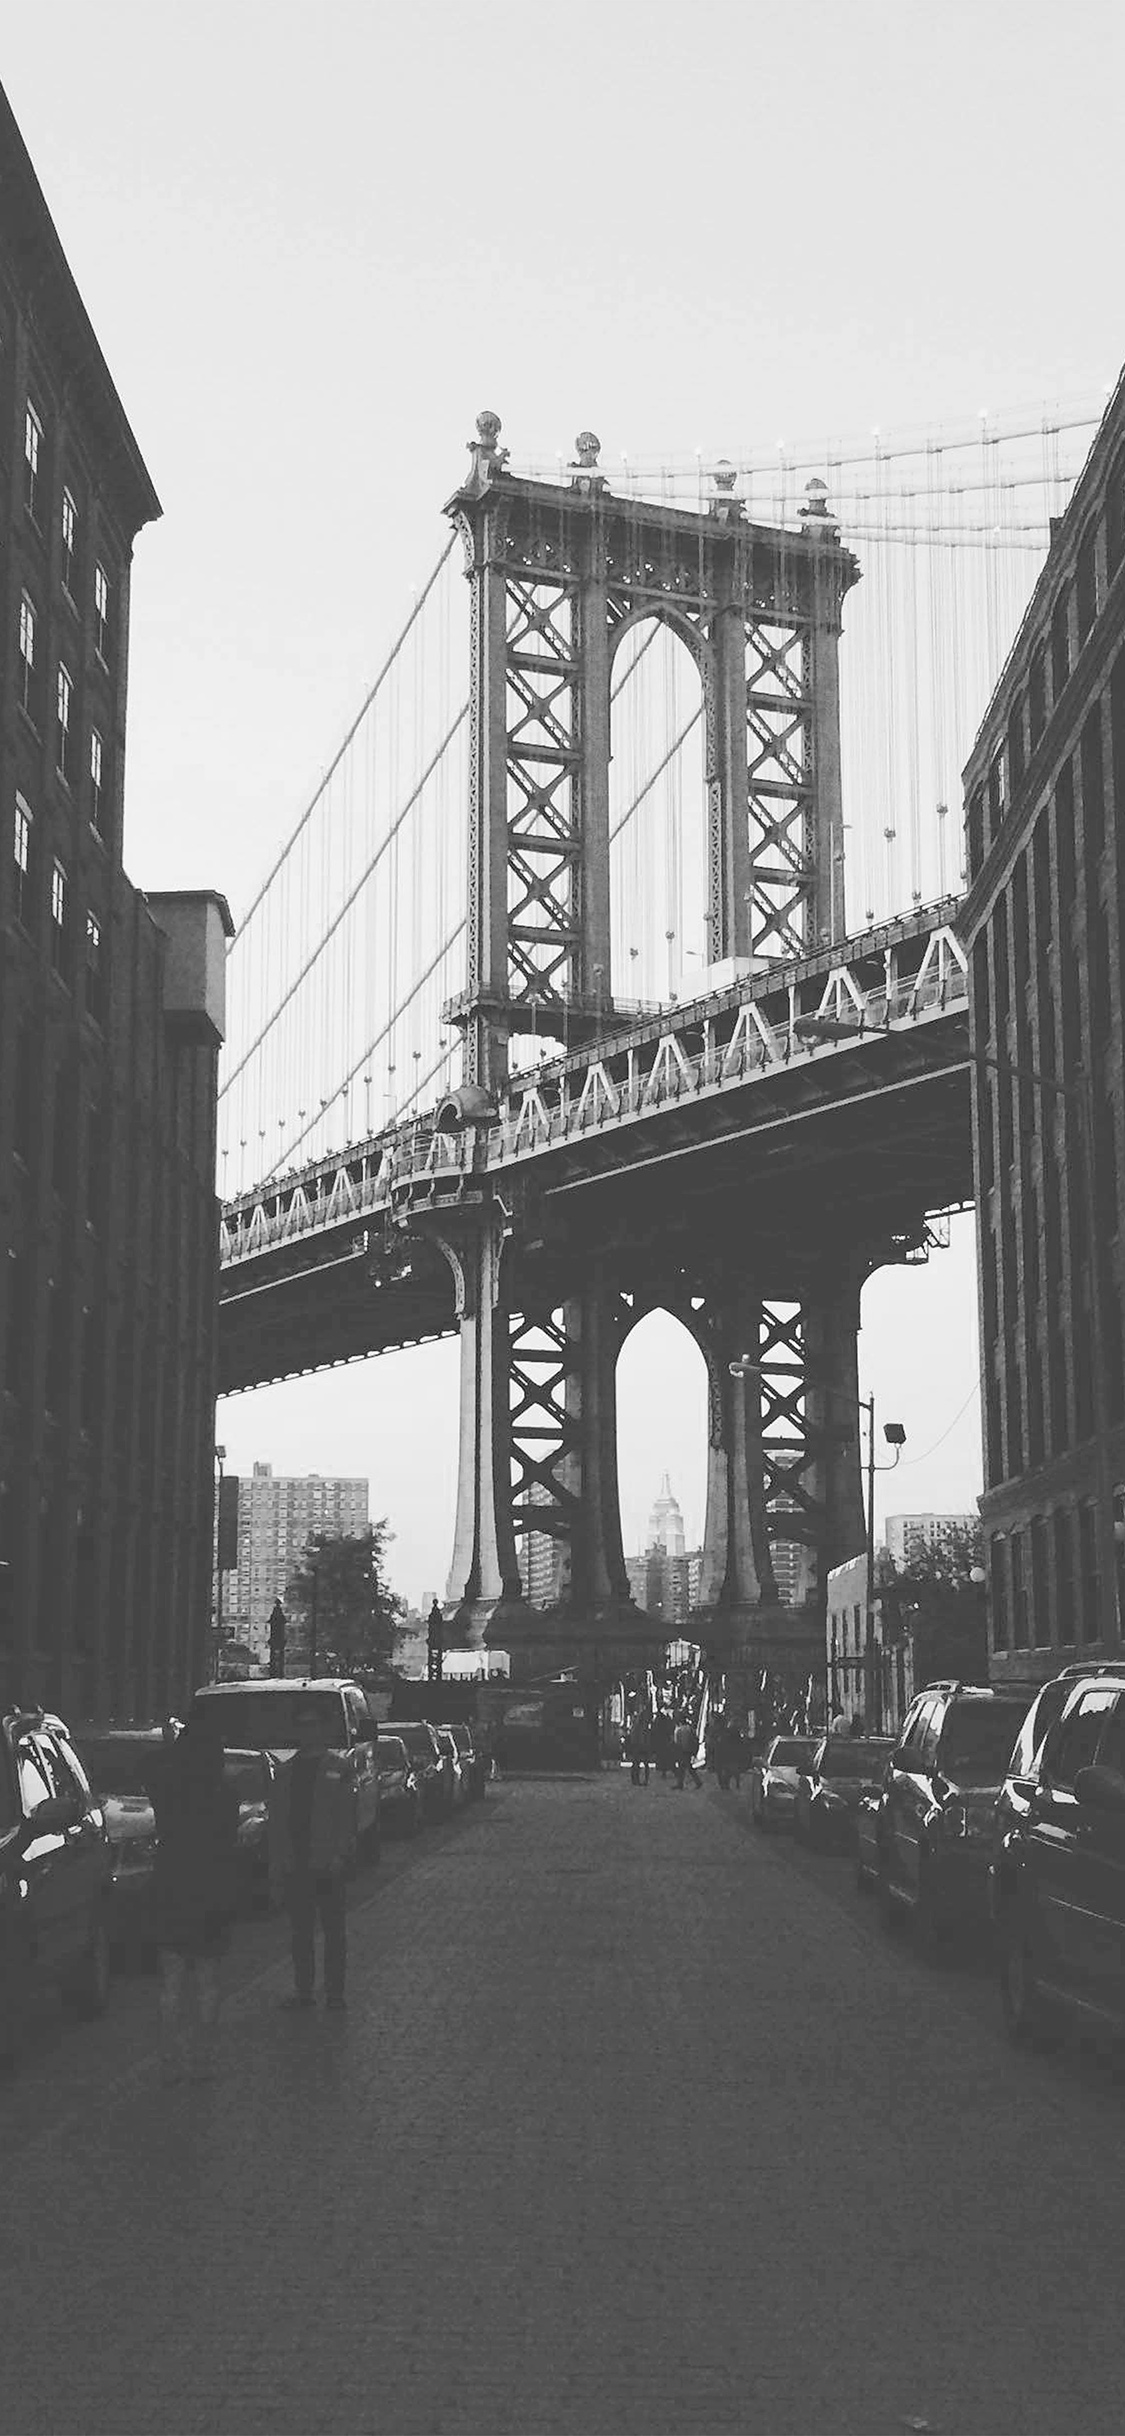 Mx43 Newyork Bridge City Building Architecture Street Bw Wallpaper